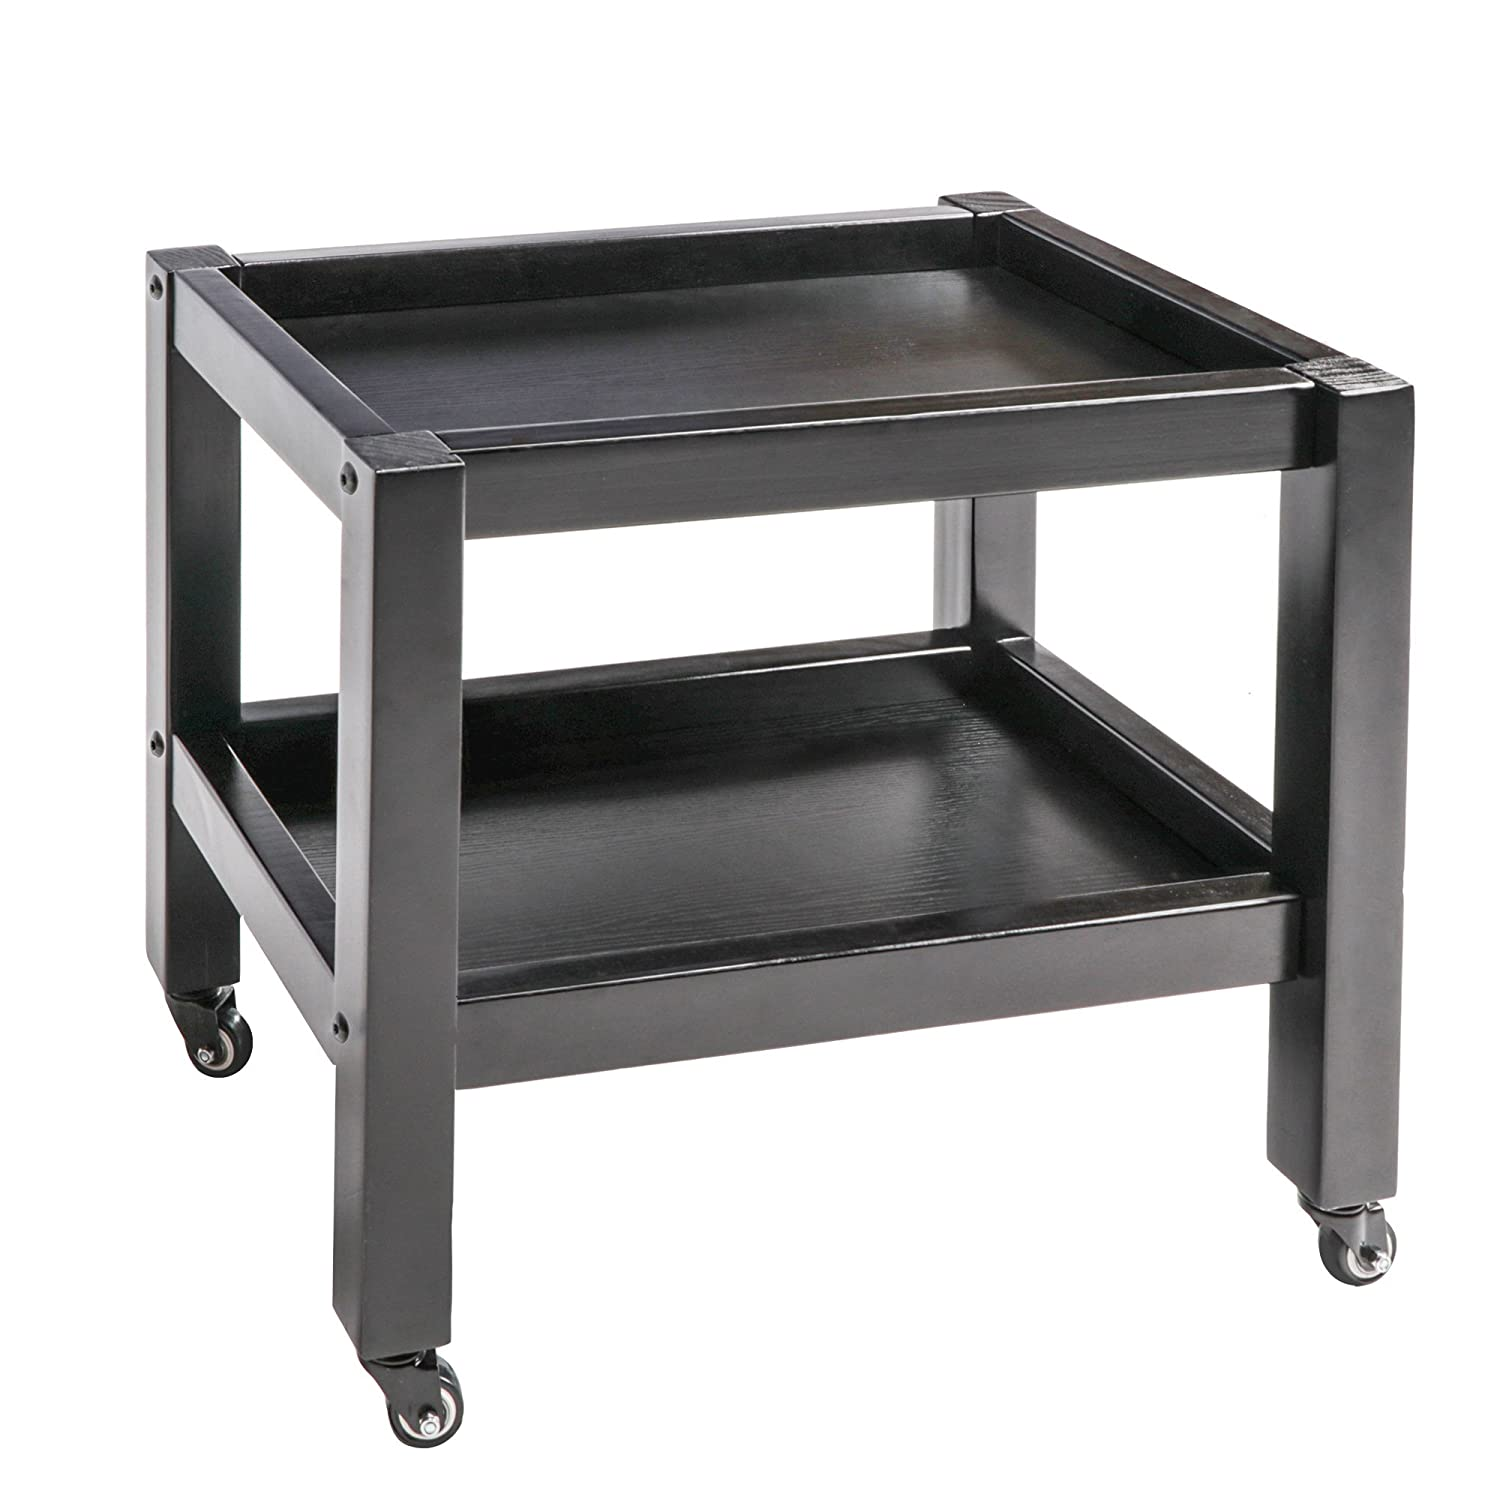 Master Massage Wooden 2-Tier Rolling Cart Mobile Trolley with Wheels for Salon Spa Tattoo Clinics Office Home Use, Black